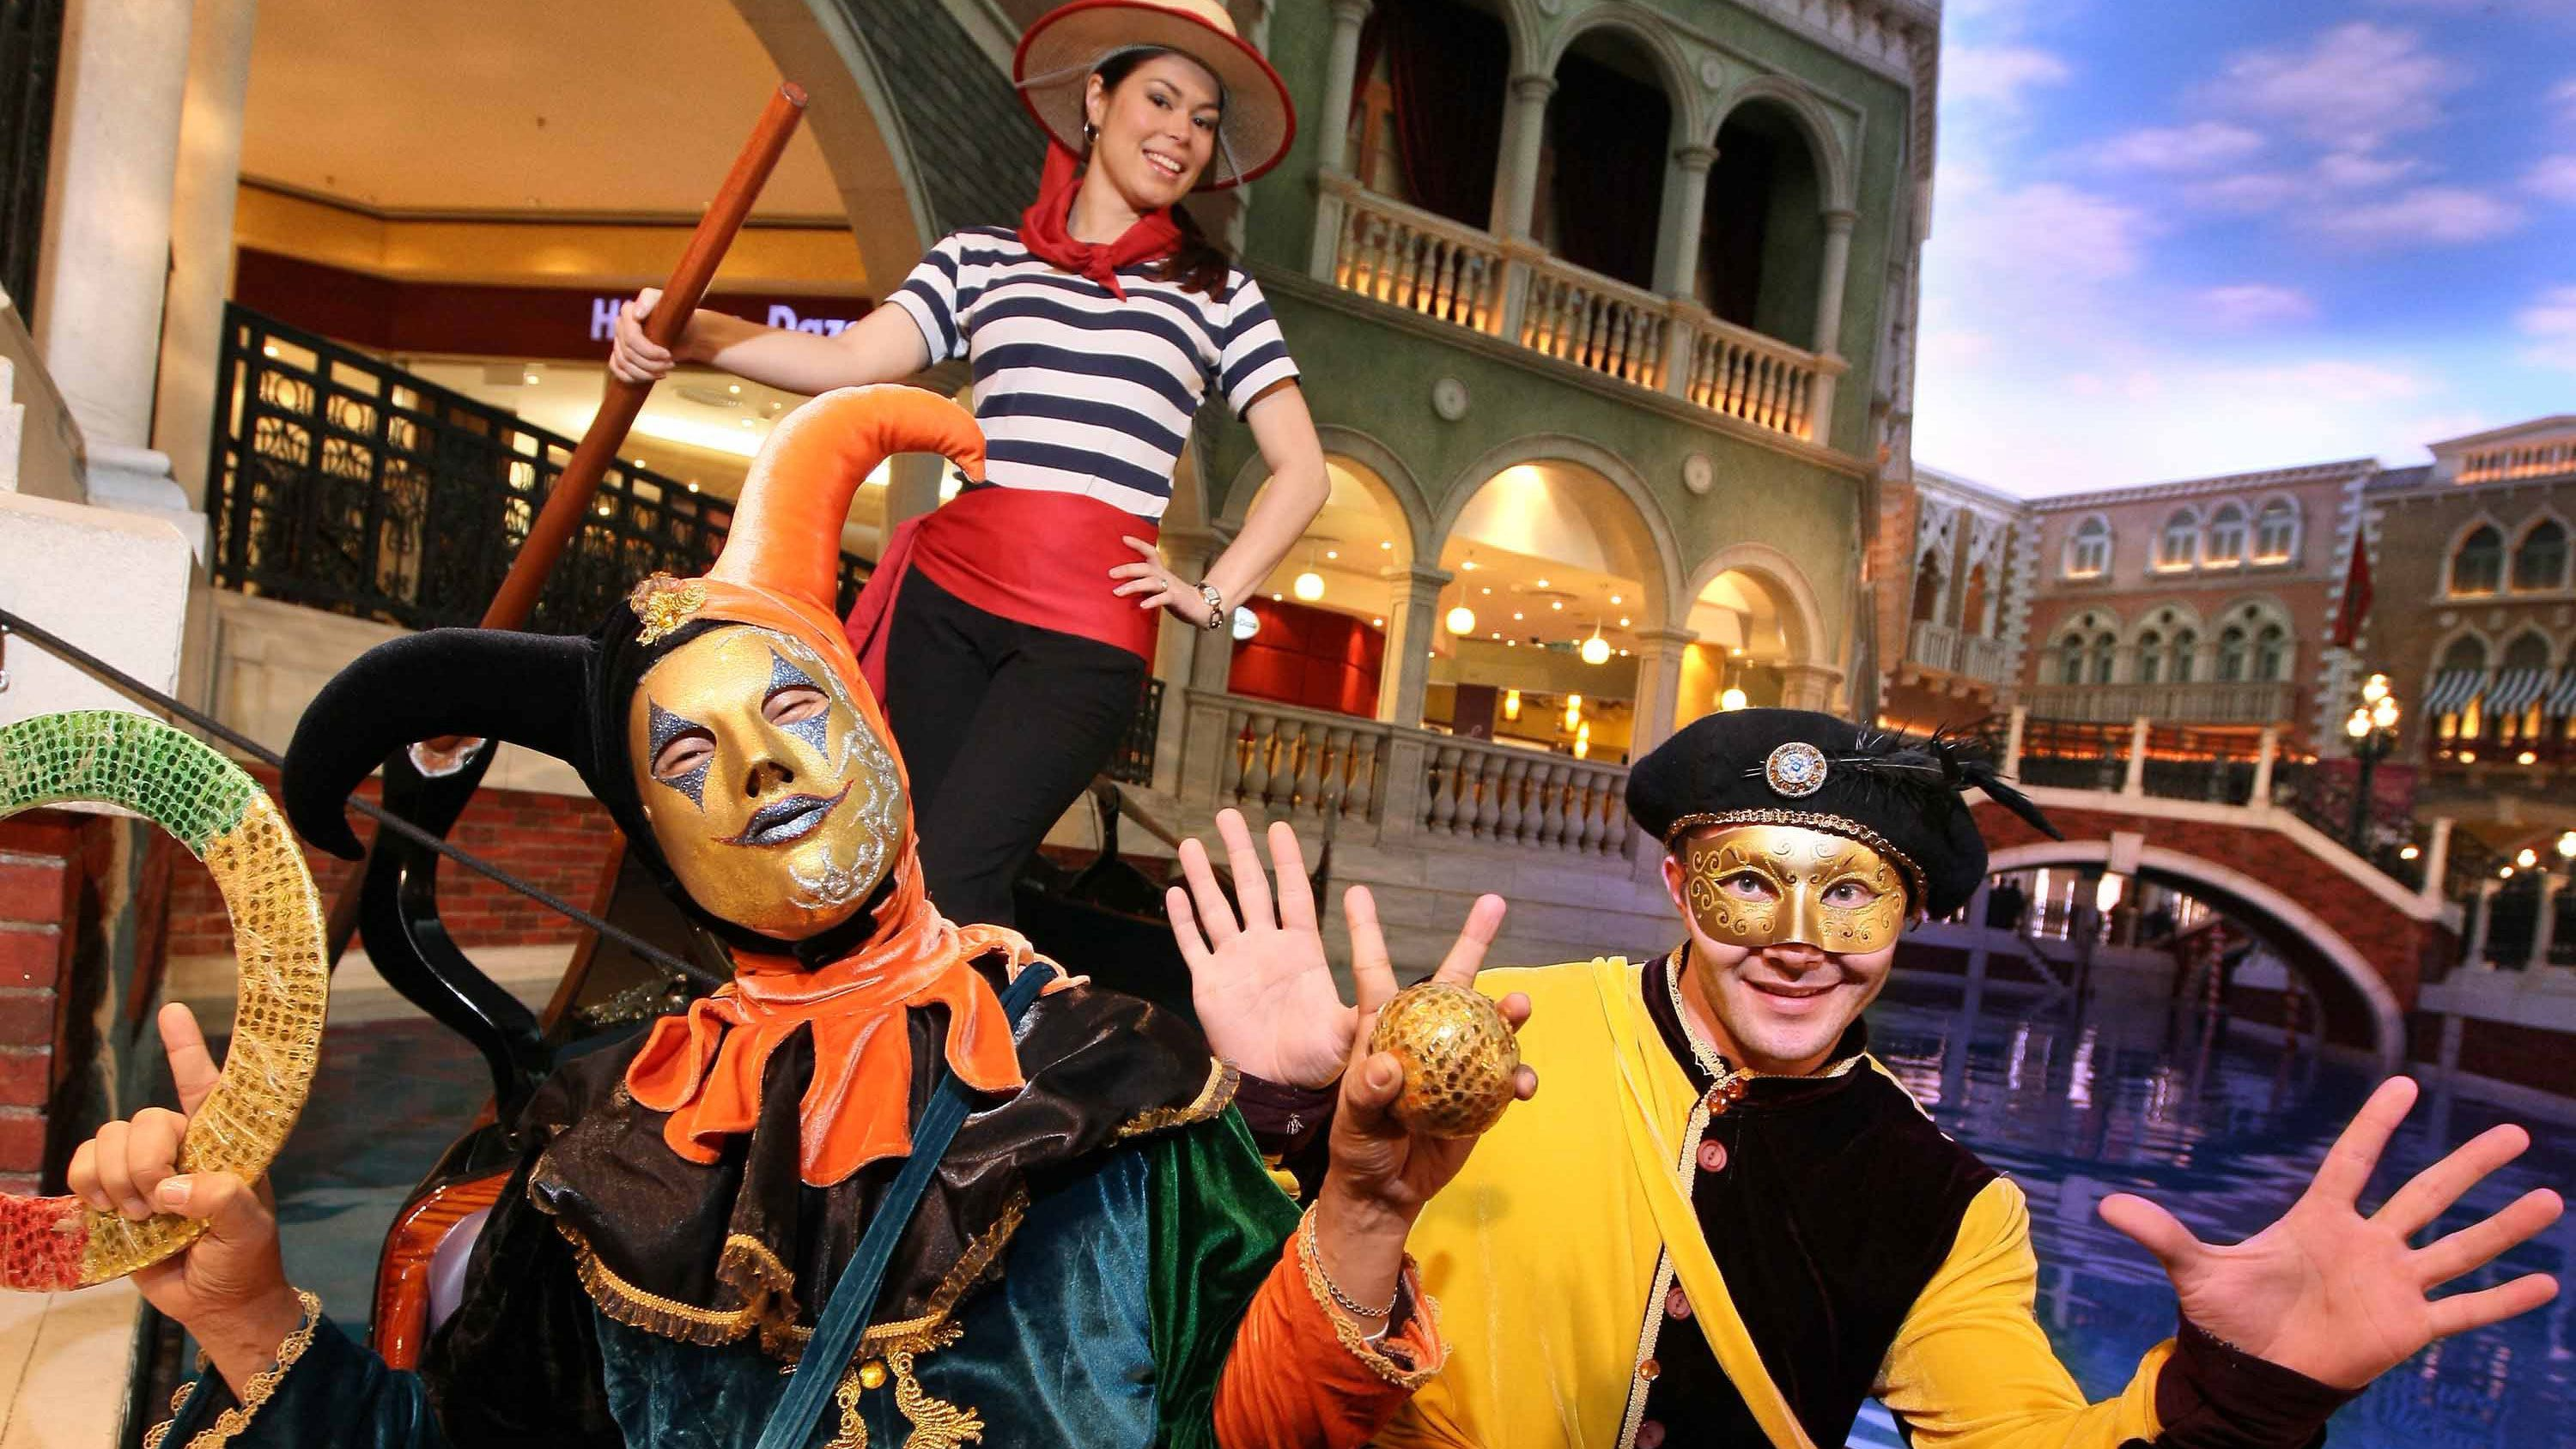 Female Gondolier and court jesters miming with hand gestures.